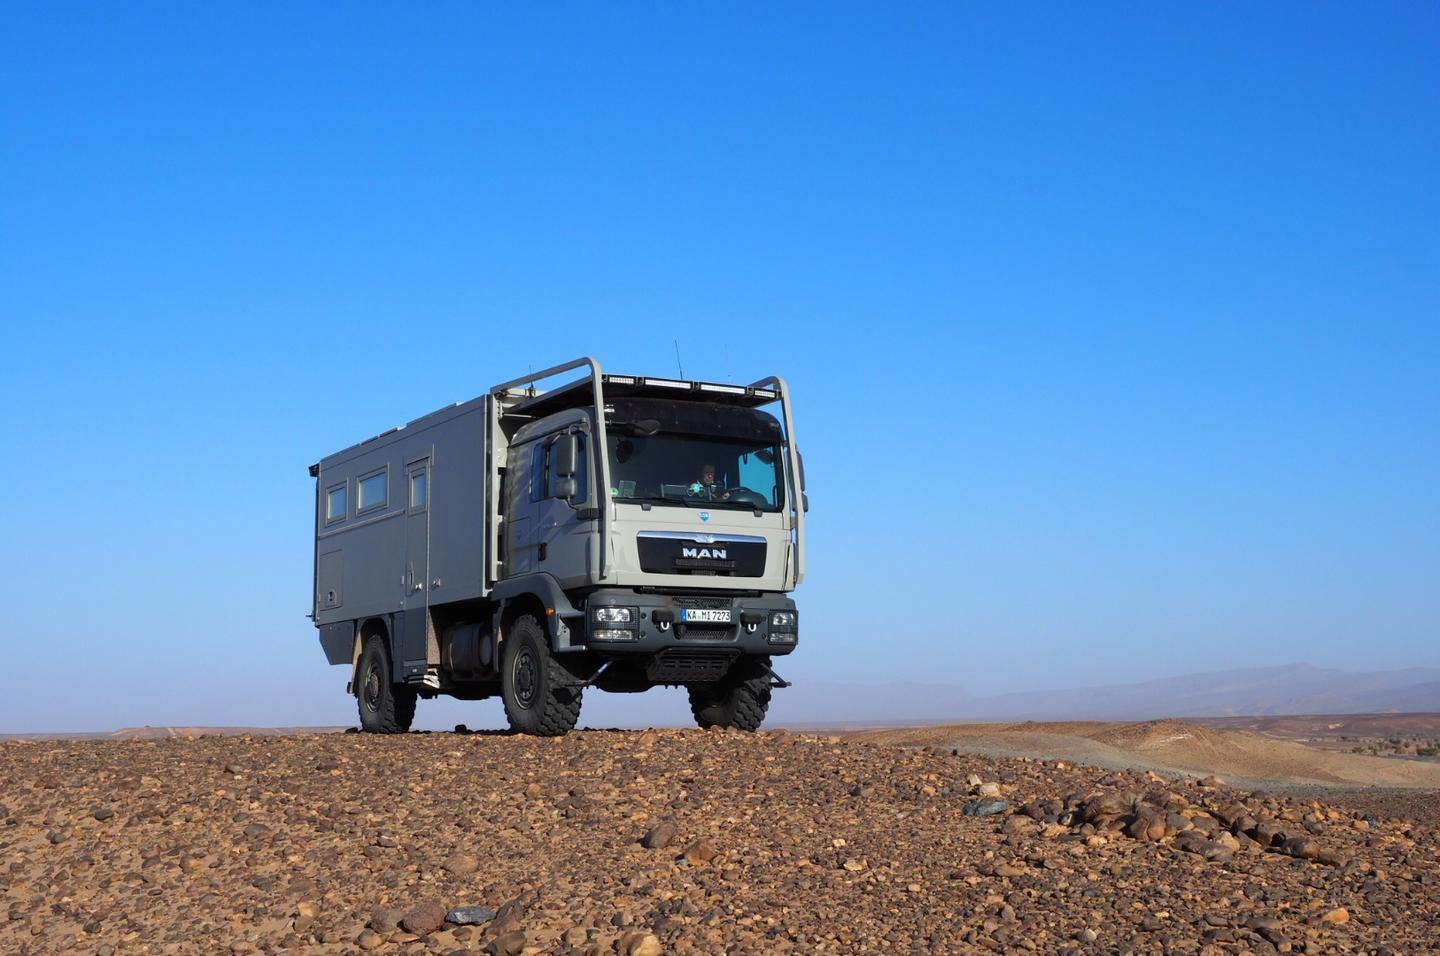 Unicat doesn't mess around when it comes to big, burly expedition vehicles, and the MAN MD57 is no exception